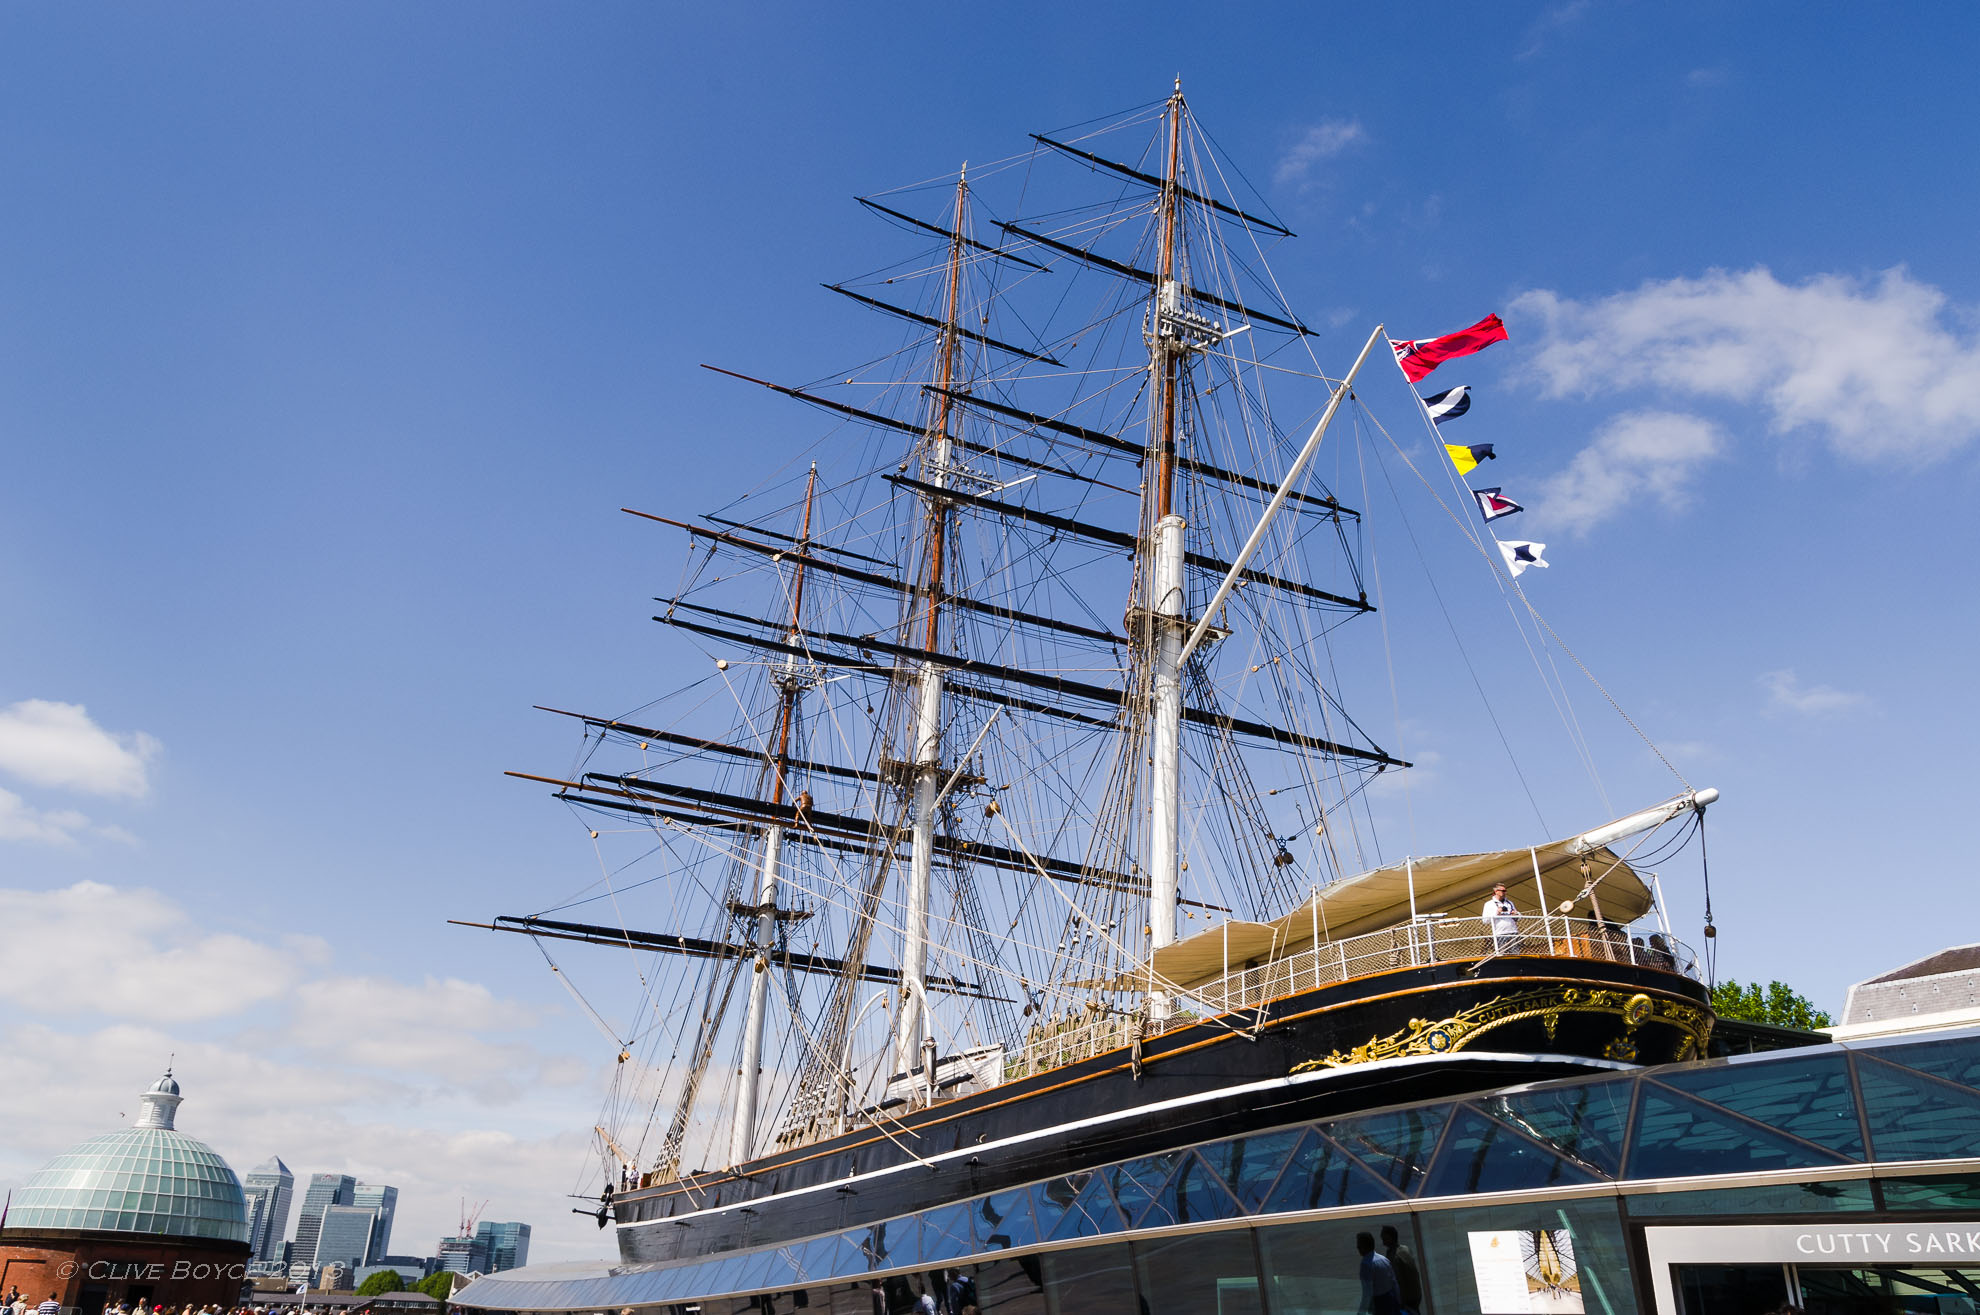 The Cutty Sark Photo Morsels